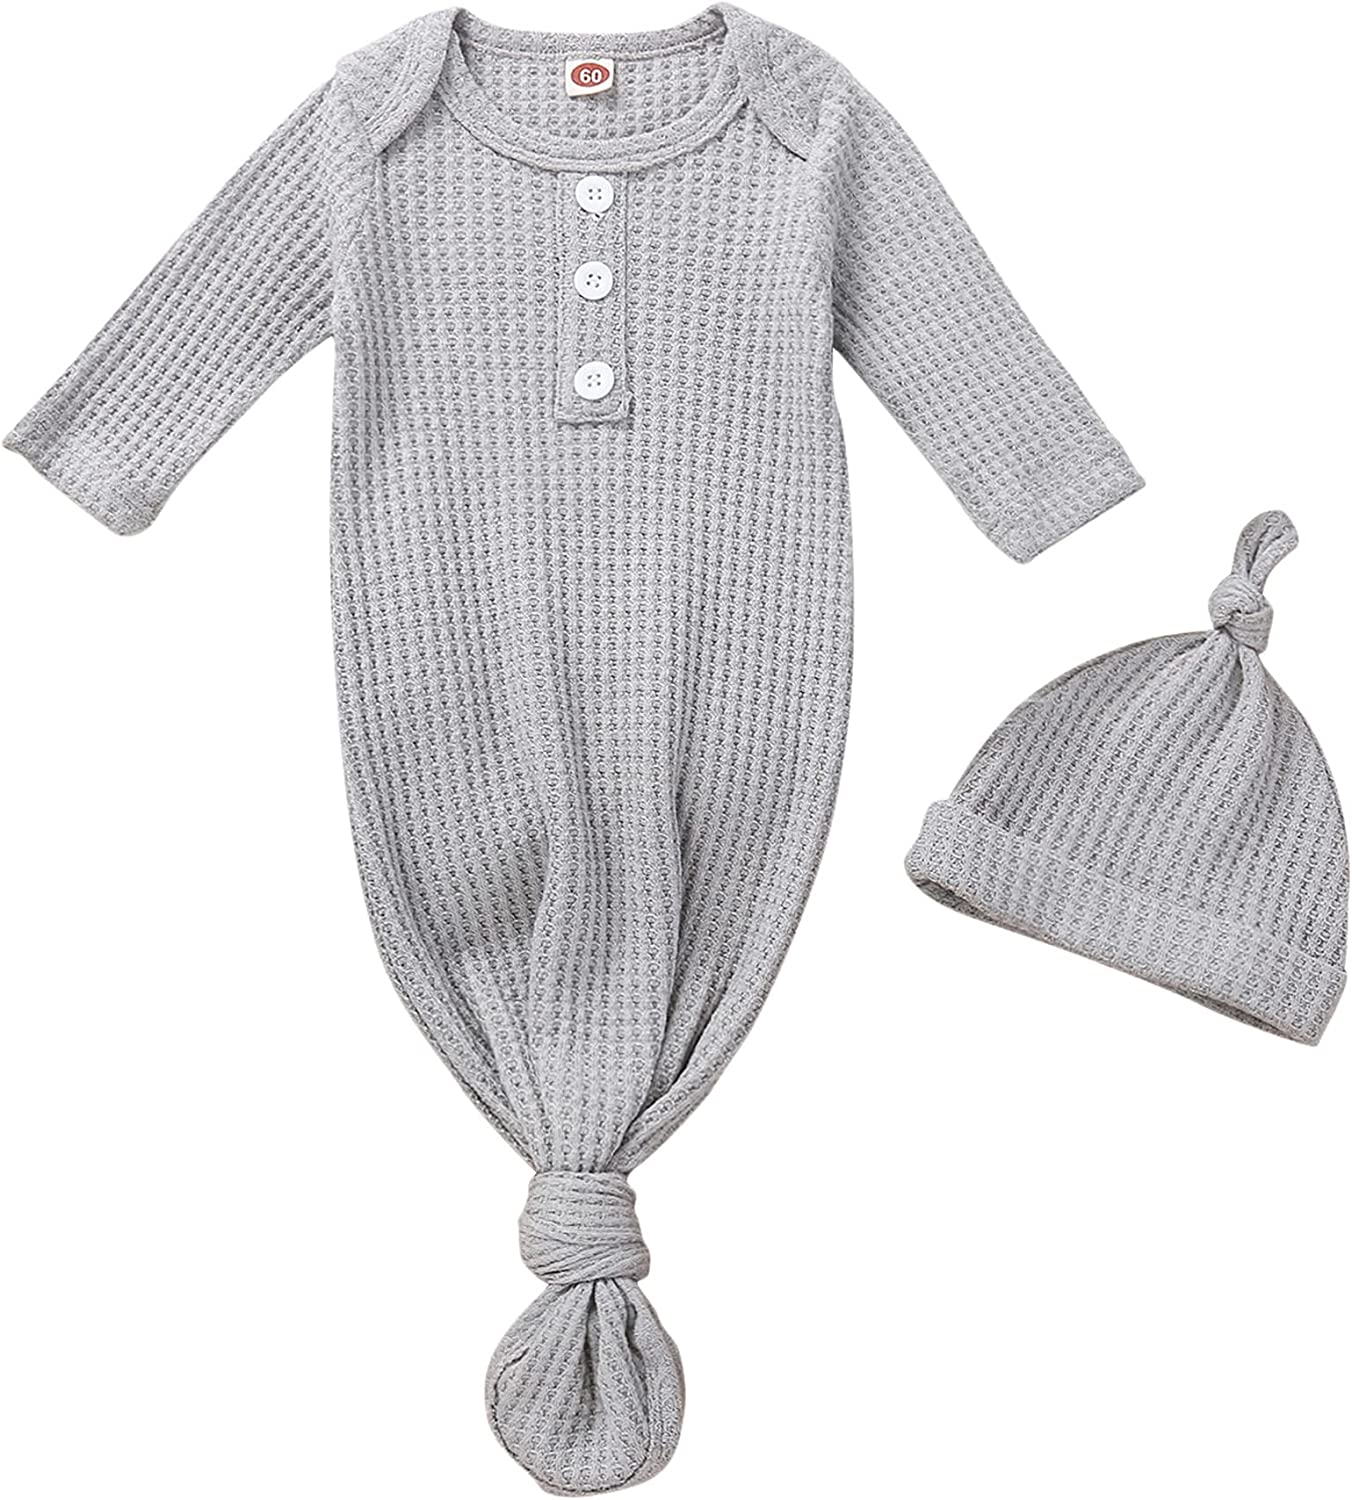 Cutoluca Newborn Infant Baby Boy Girl Solid Color Cotton Sleeper Gown Sleeping Bag Hat Outfit